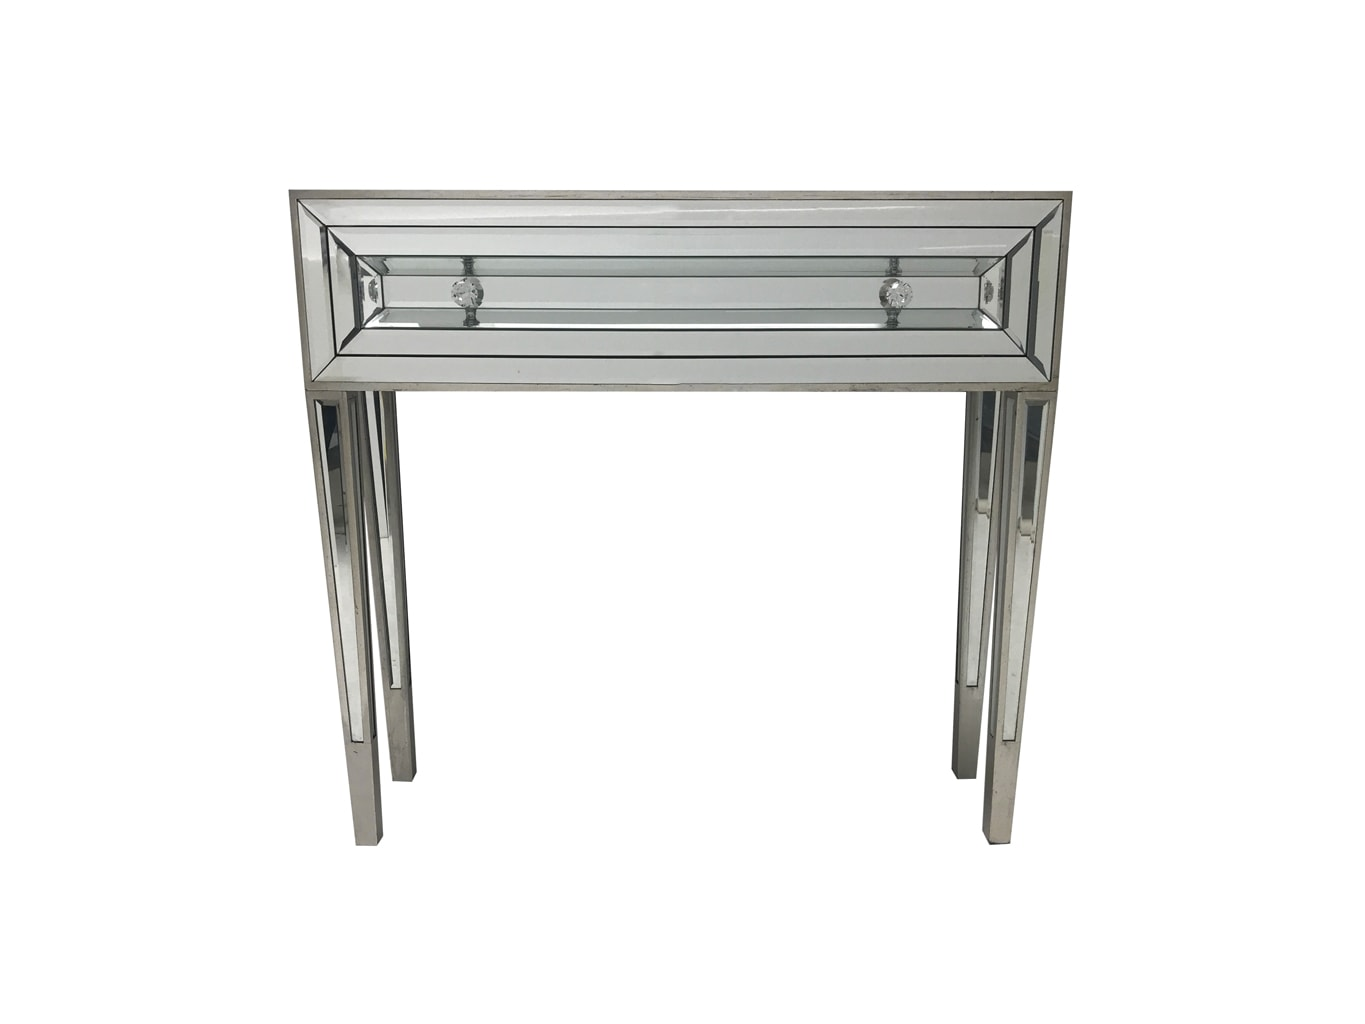 Mirrored console table with one drawer and two diamante handles, front view.